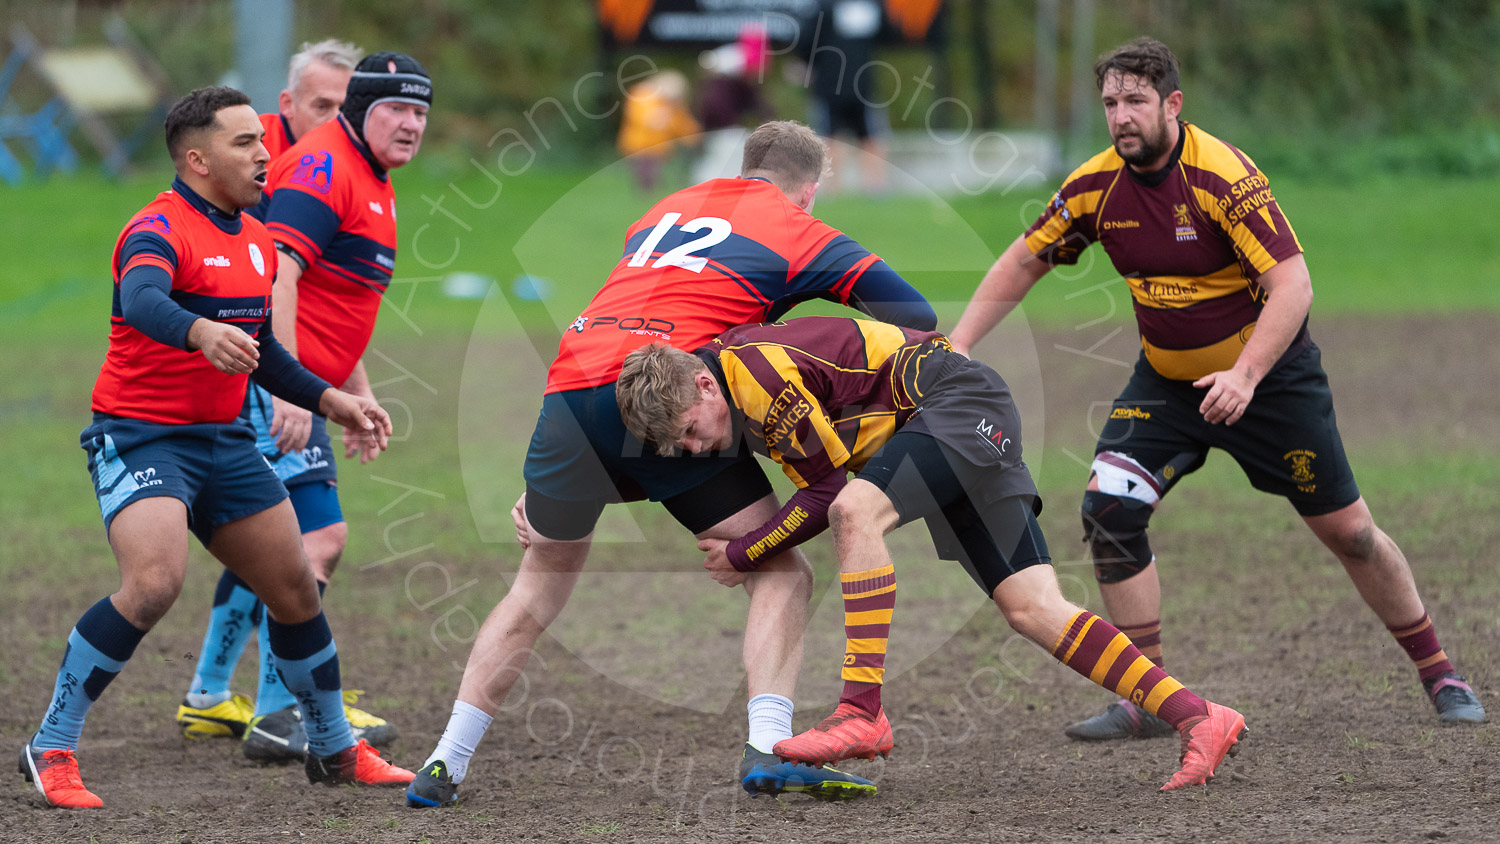 20181027 Amp Extras vs St Neots 2nd XV #2172